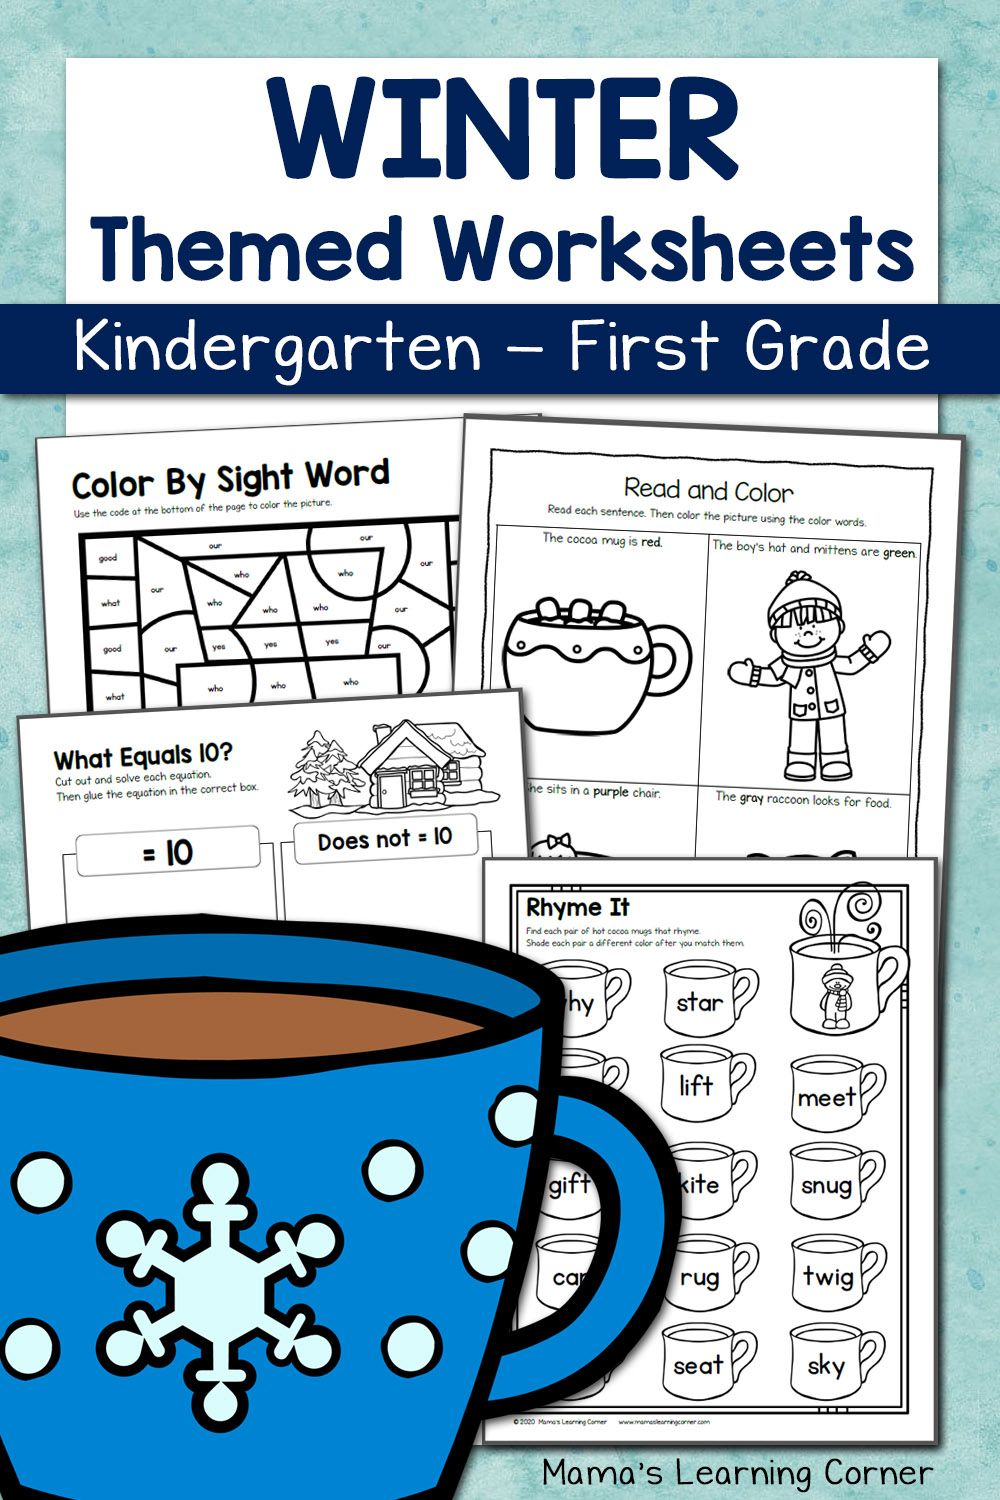 Winter Worksheets For Kindergarten And First Grade Winter Math Worksheets First Grade Worksheets Kindergarten Worksheets